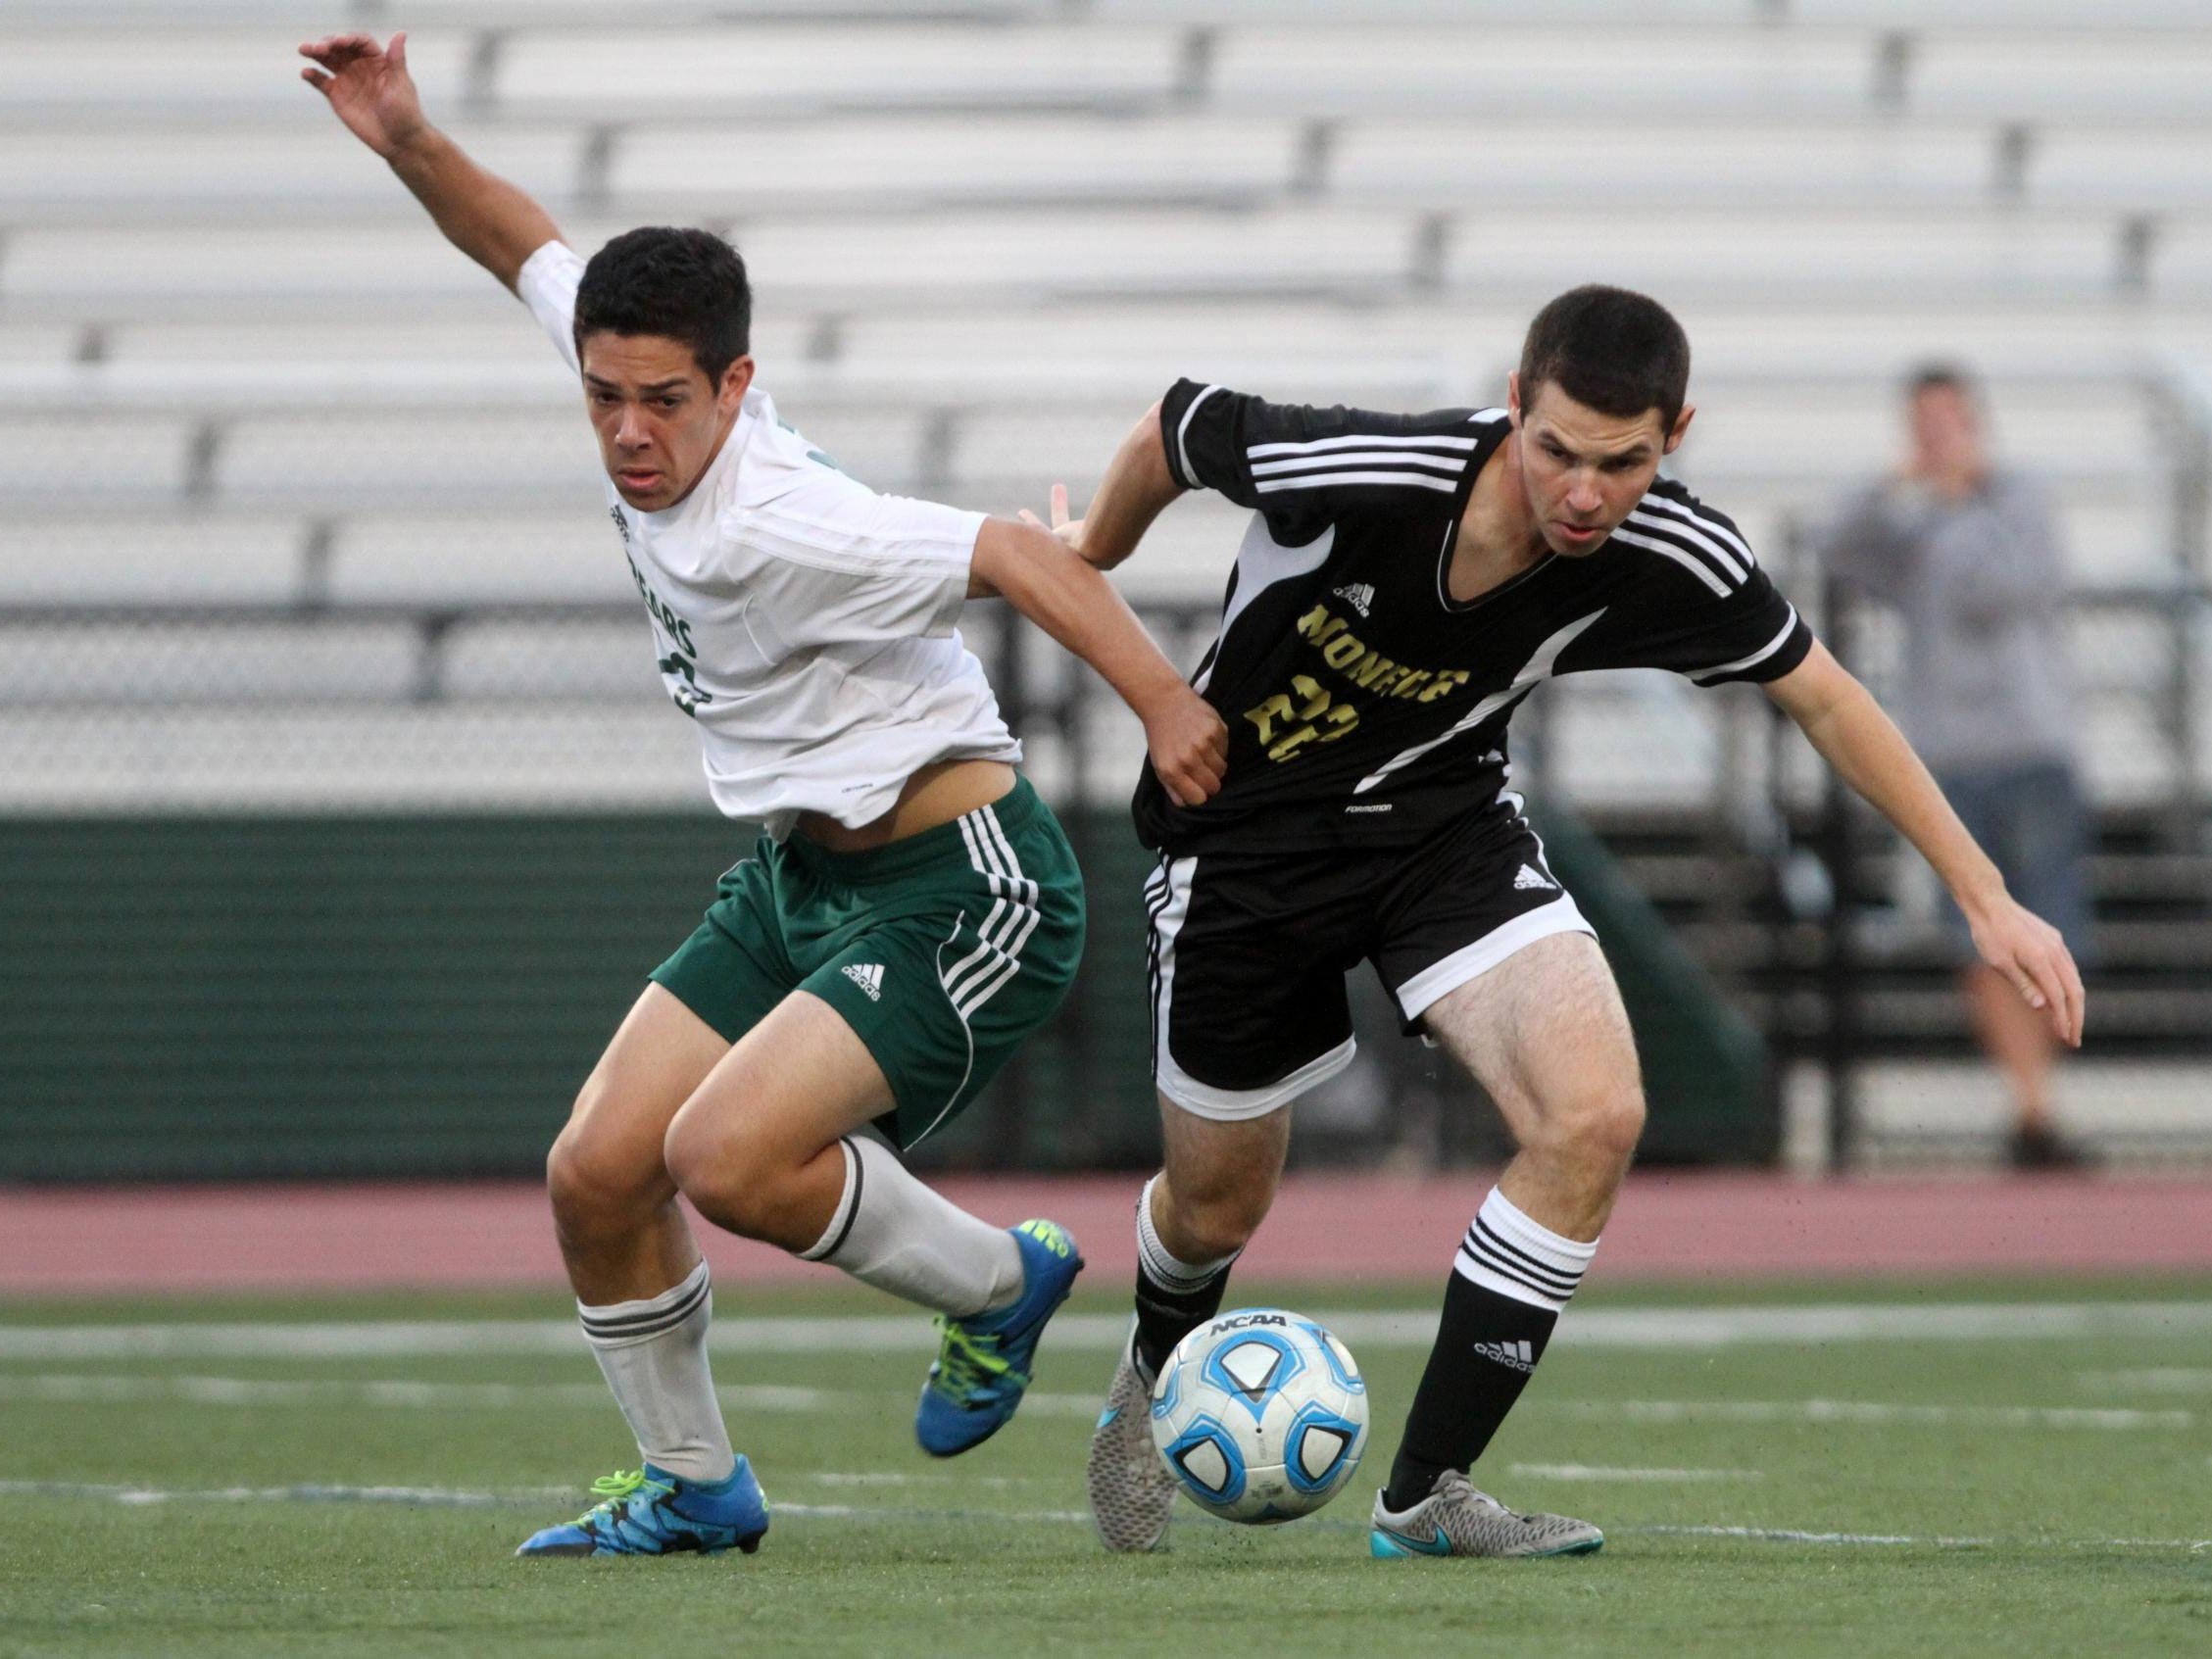 East Brunswick's Jason Kramer battles with Monroe's Ryan McCabe during the first half on Thursday in East Brunswick.